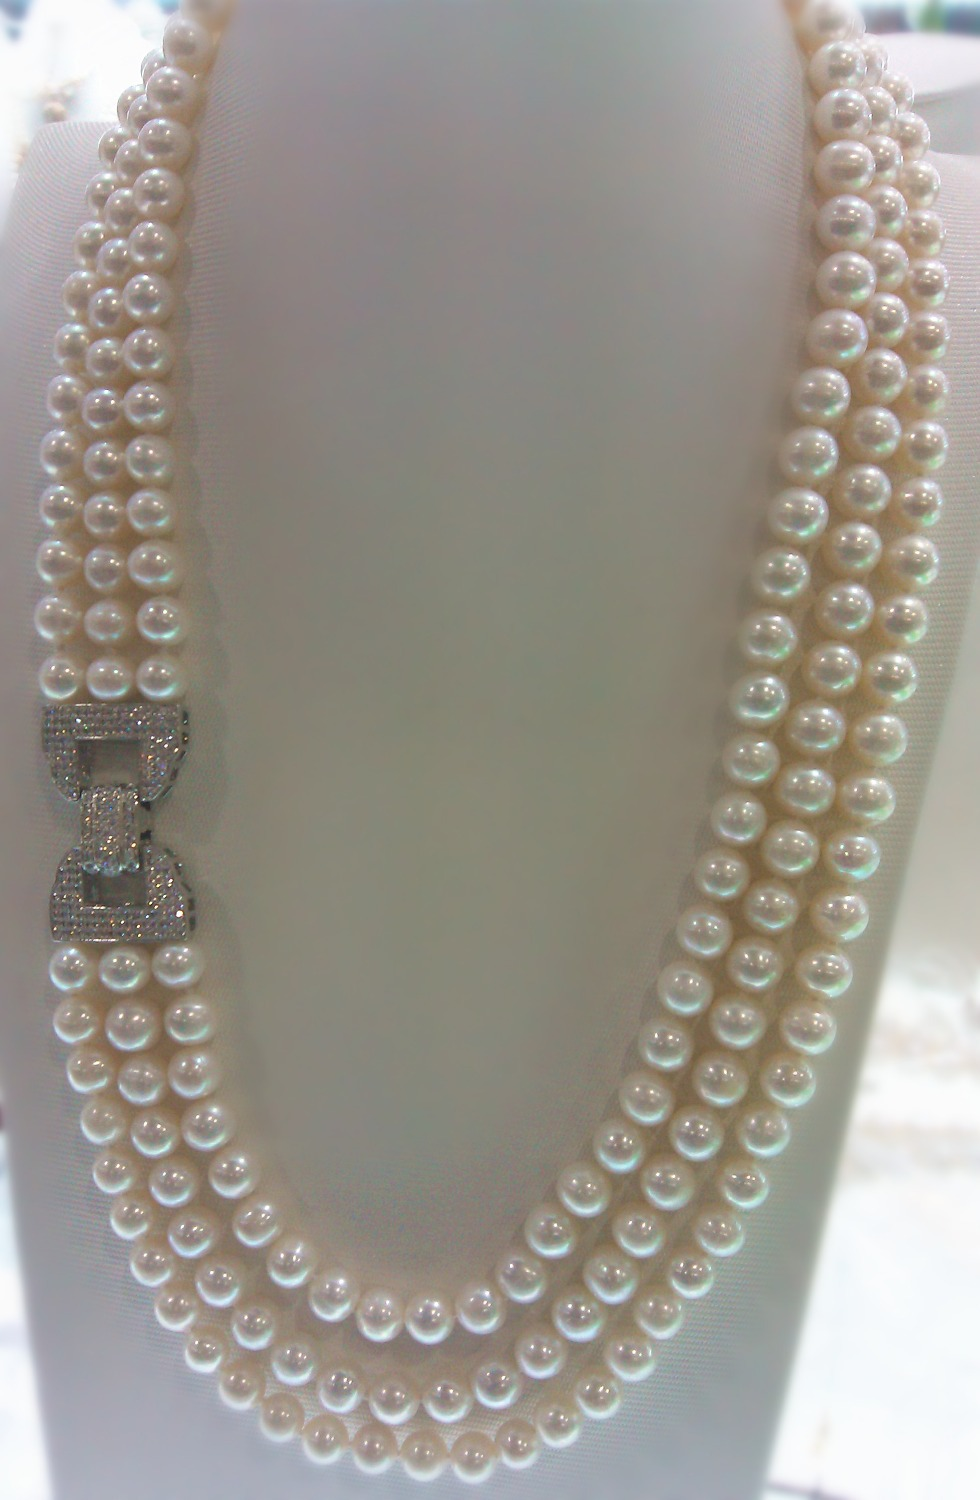 wholesale high quality 3rows natural AA 8-9mm white freshwater pearl necklace 002wholesale high quality 3rows natural AA 8-9mm white freshwater pearl necklace 002